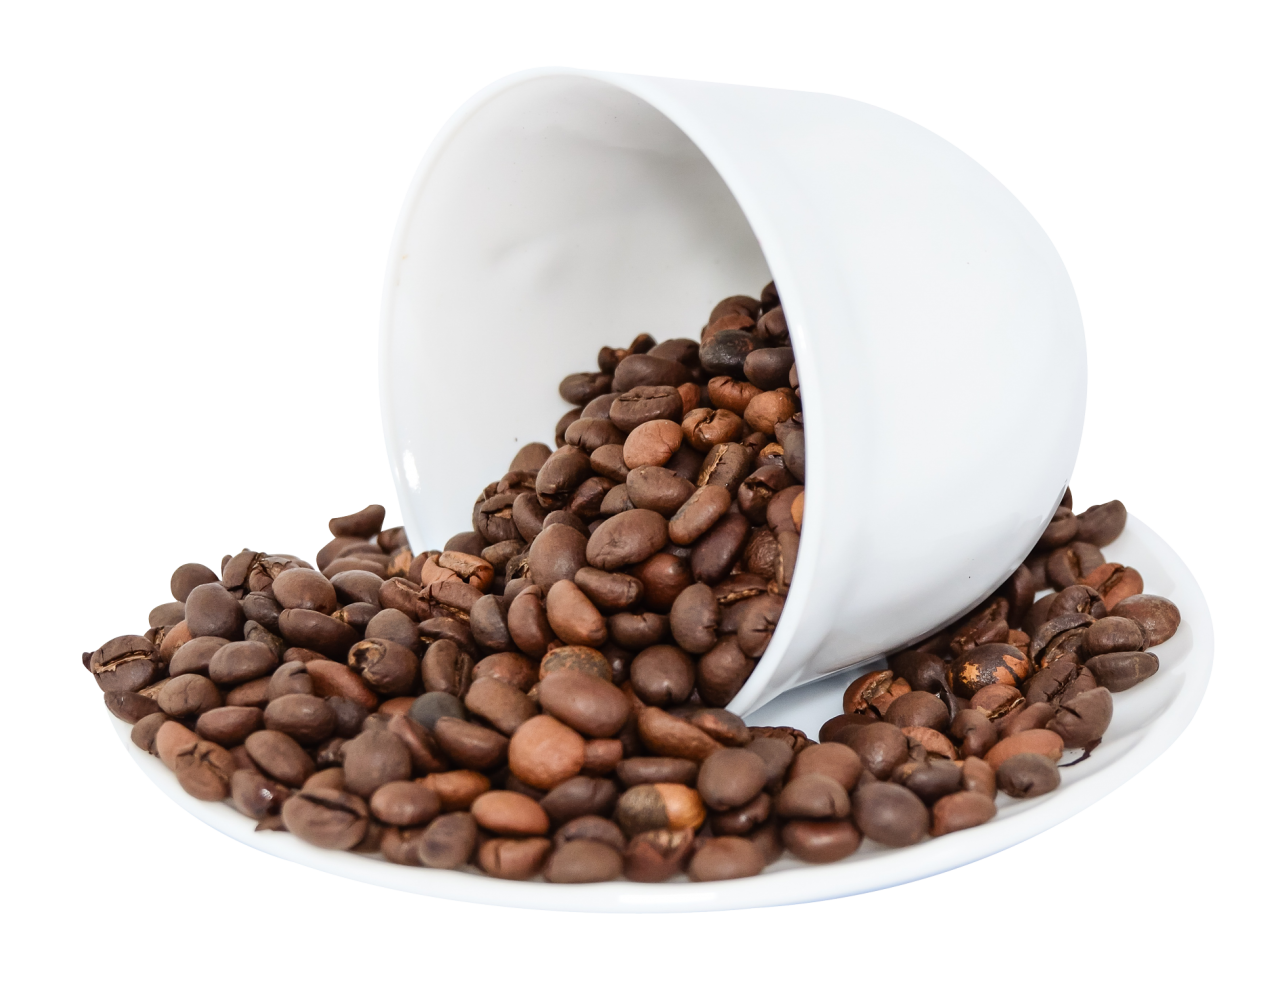 Coffee Beans PNG Image - PurePNG | Free transparent CC0 ...